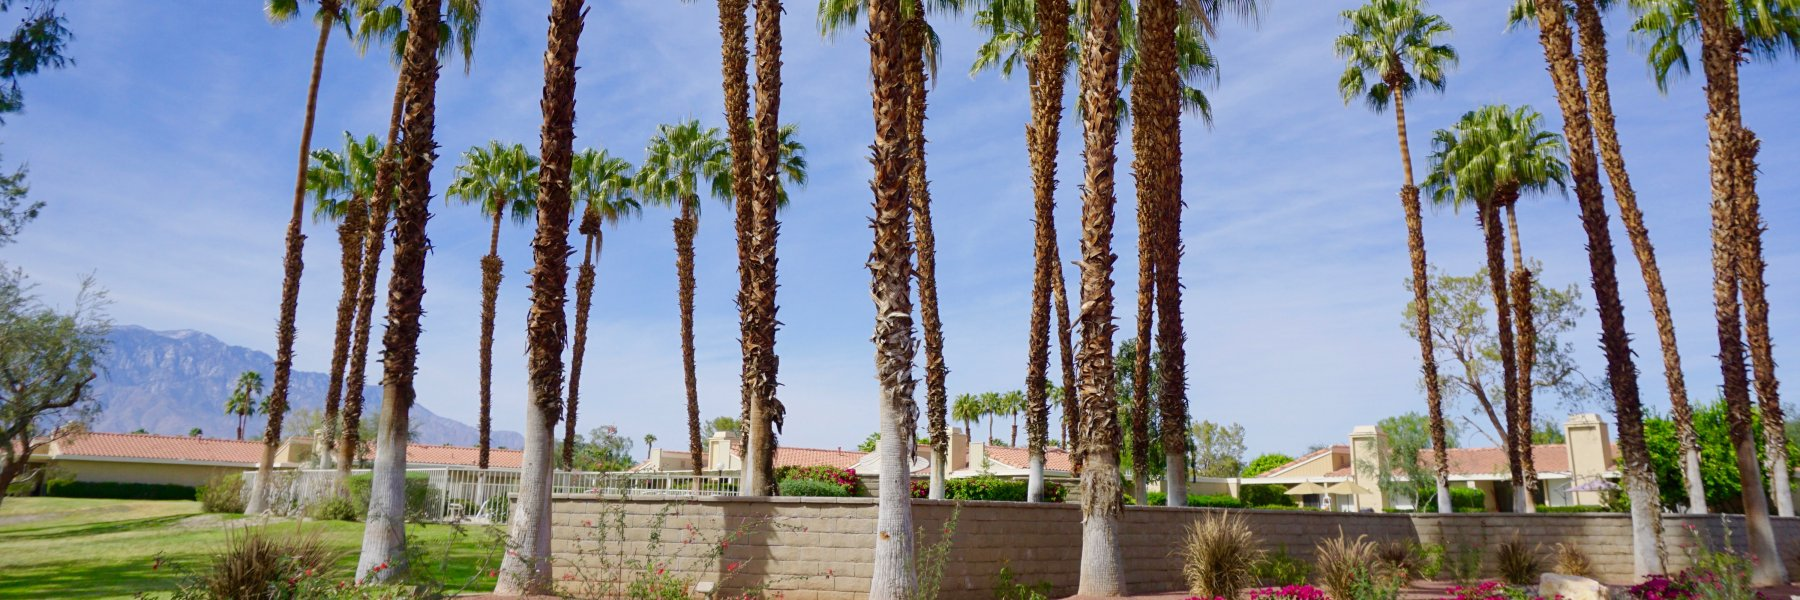 Wilshire Palms is a community of homes in Rancho Mirage California